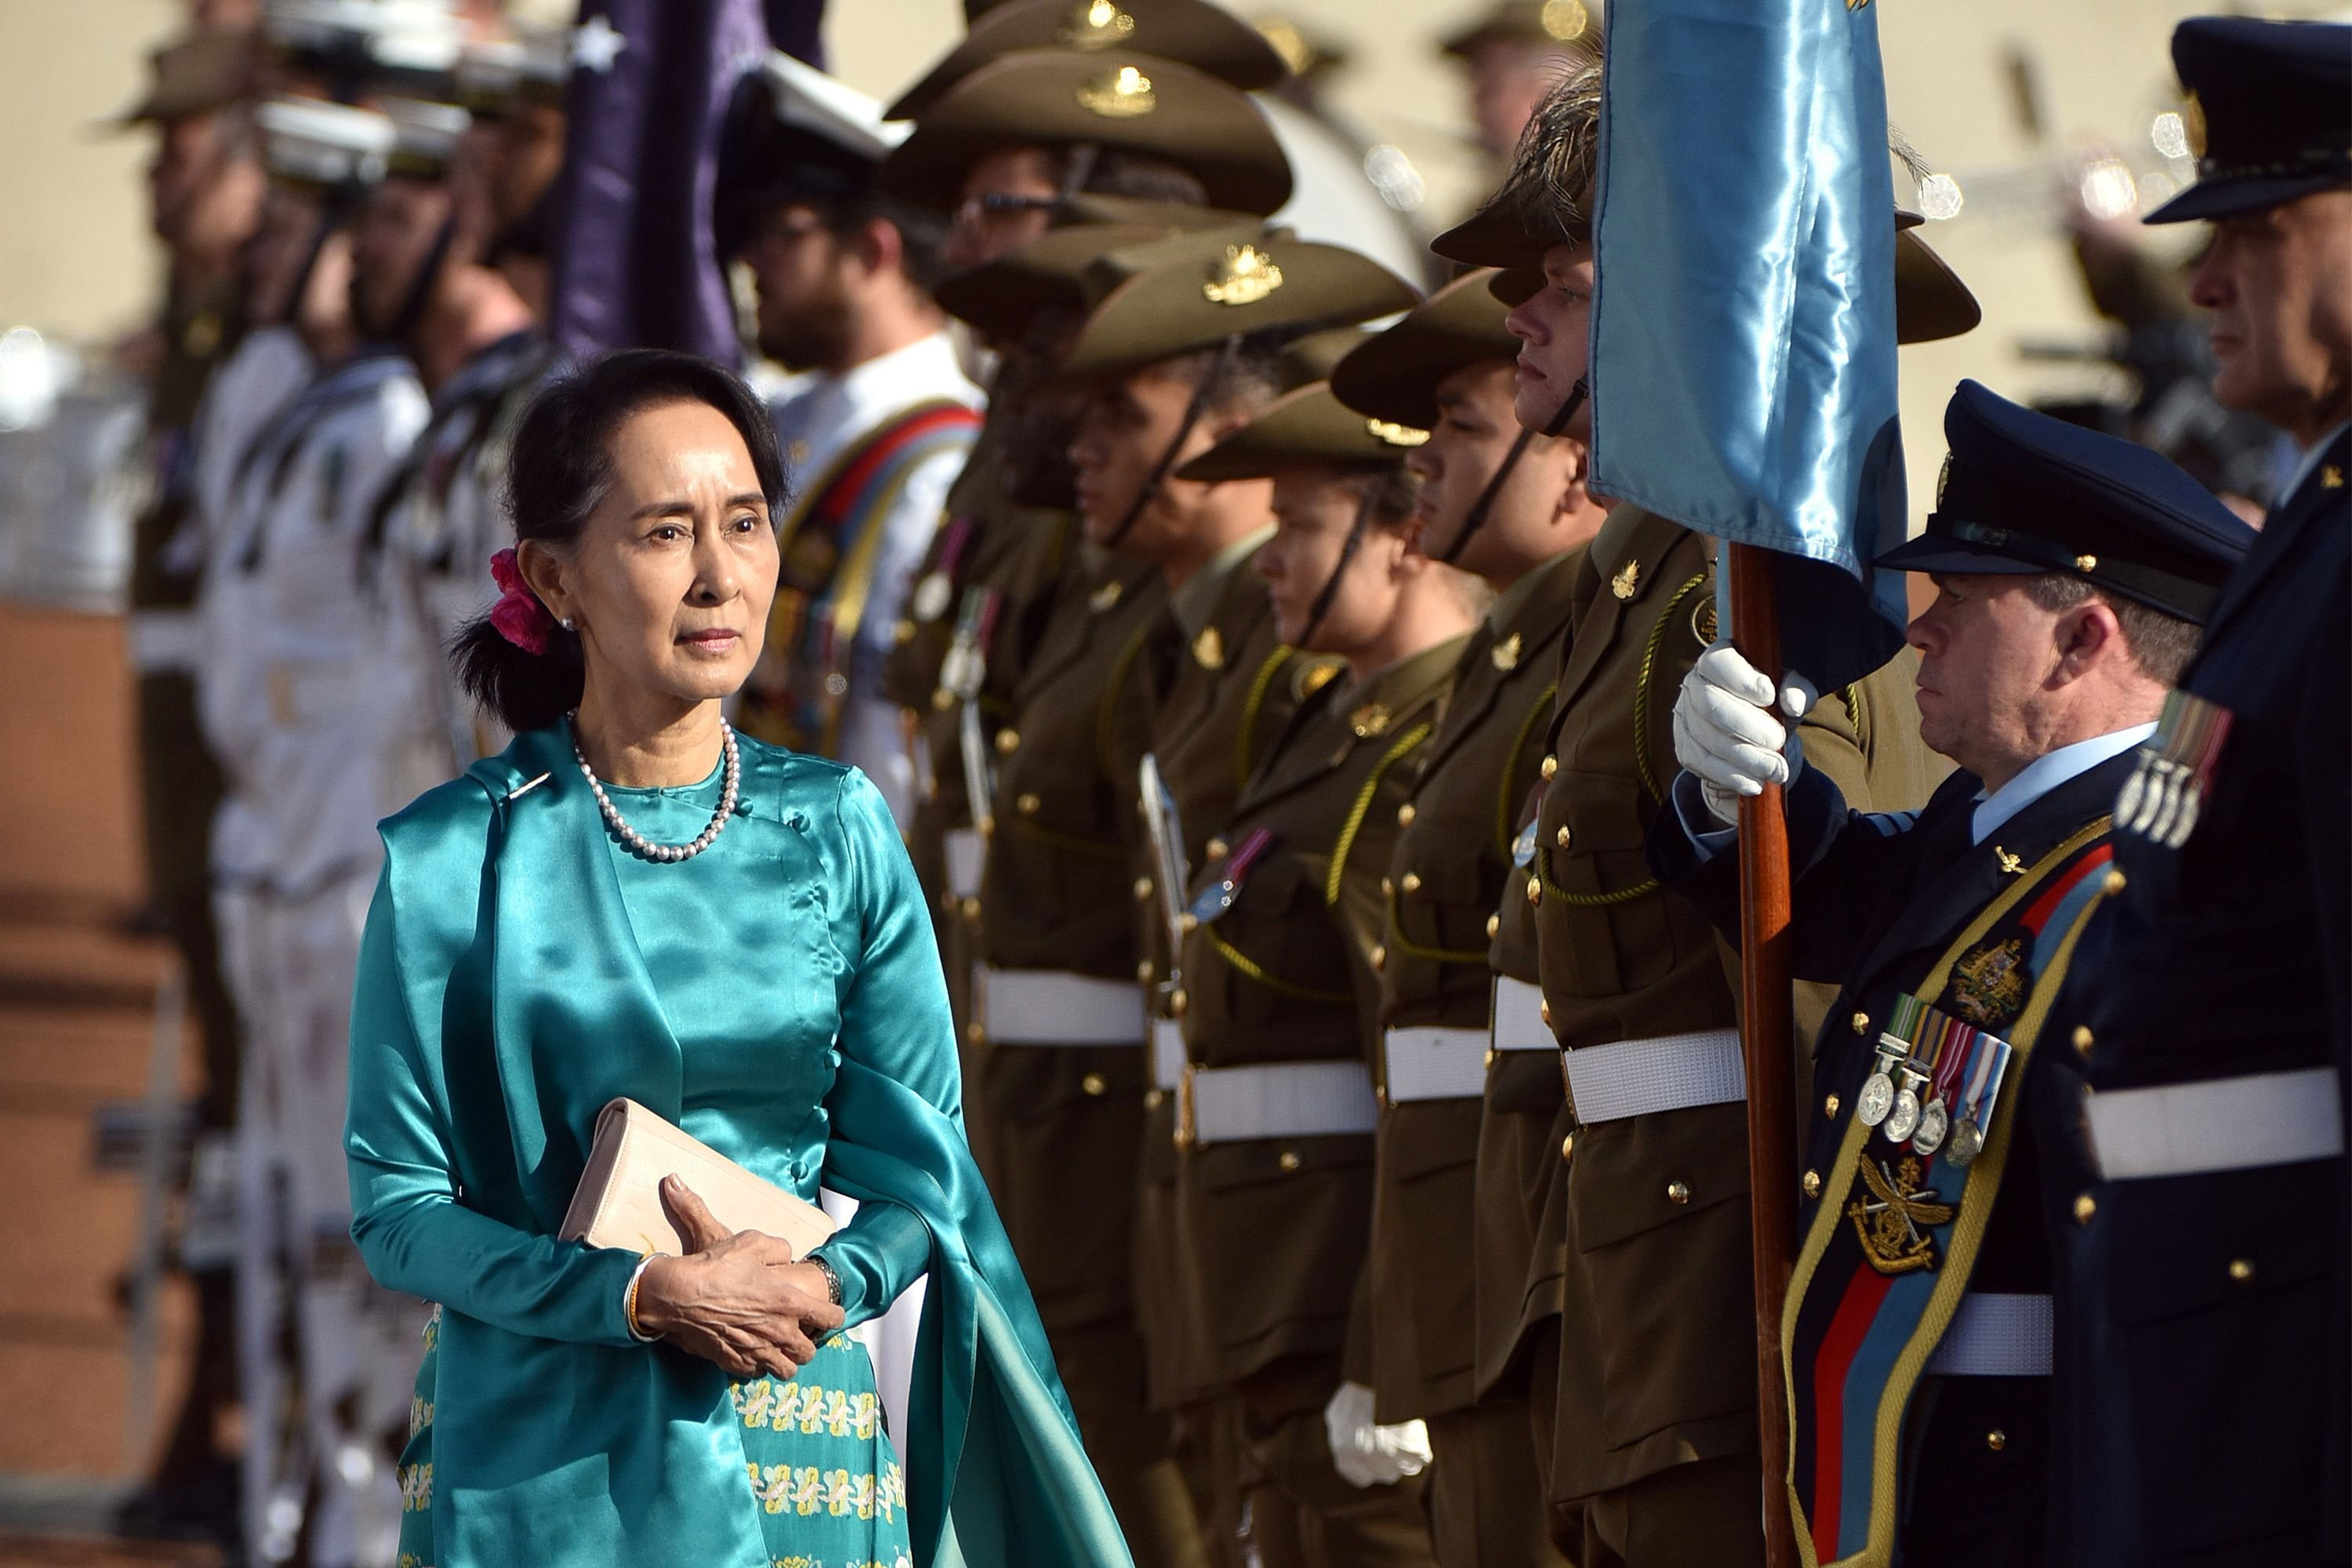 Myanmar leader Aung San Suu Kyi has said that, with hindsight, her government could have better handled the situation in Rakhine state that led to the forced displacement of more than 700,000 Rohingya Muslims.